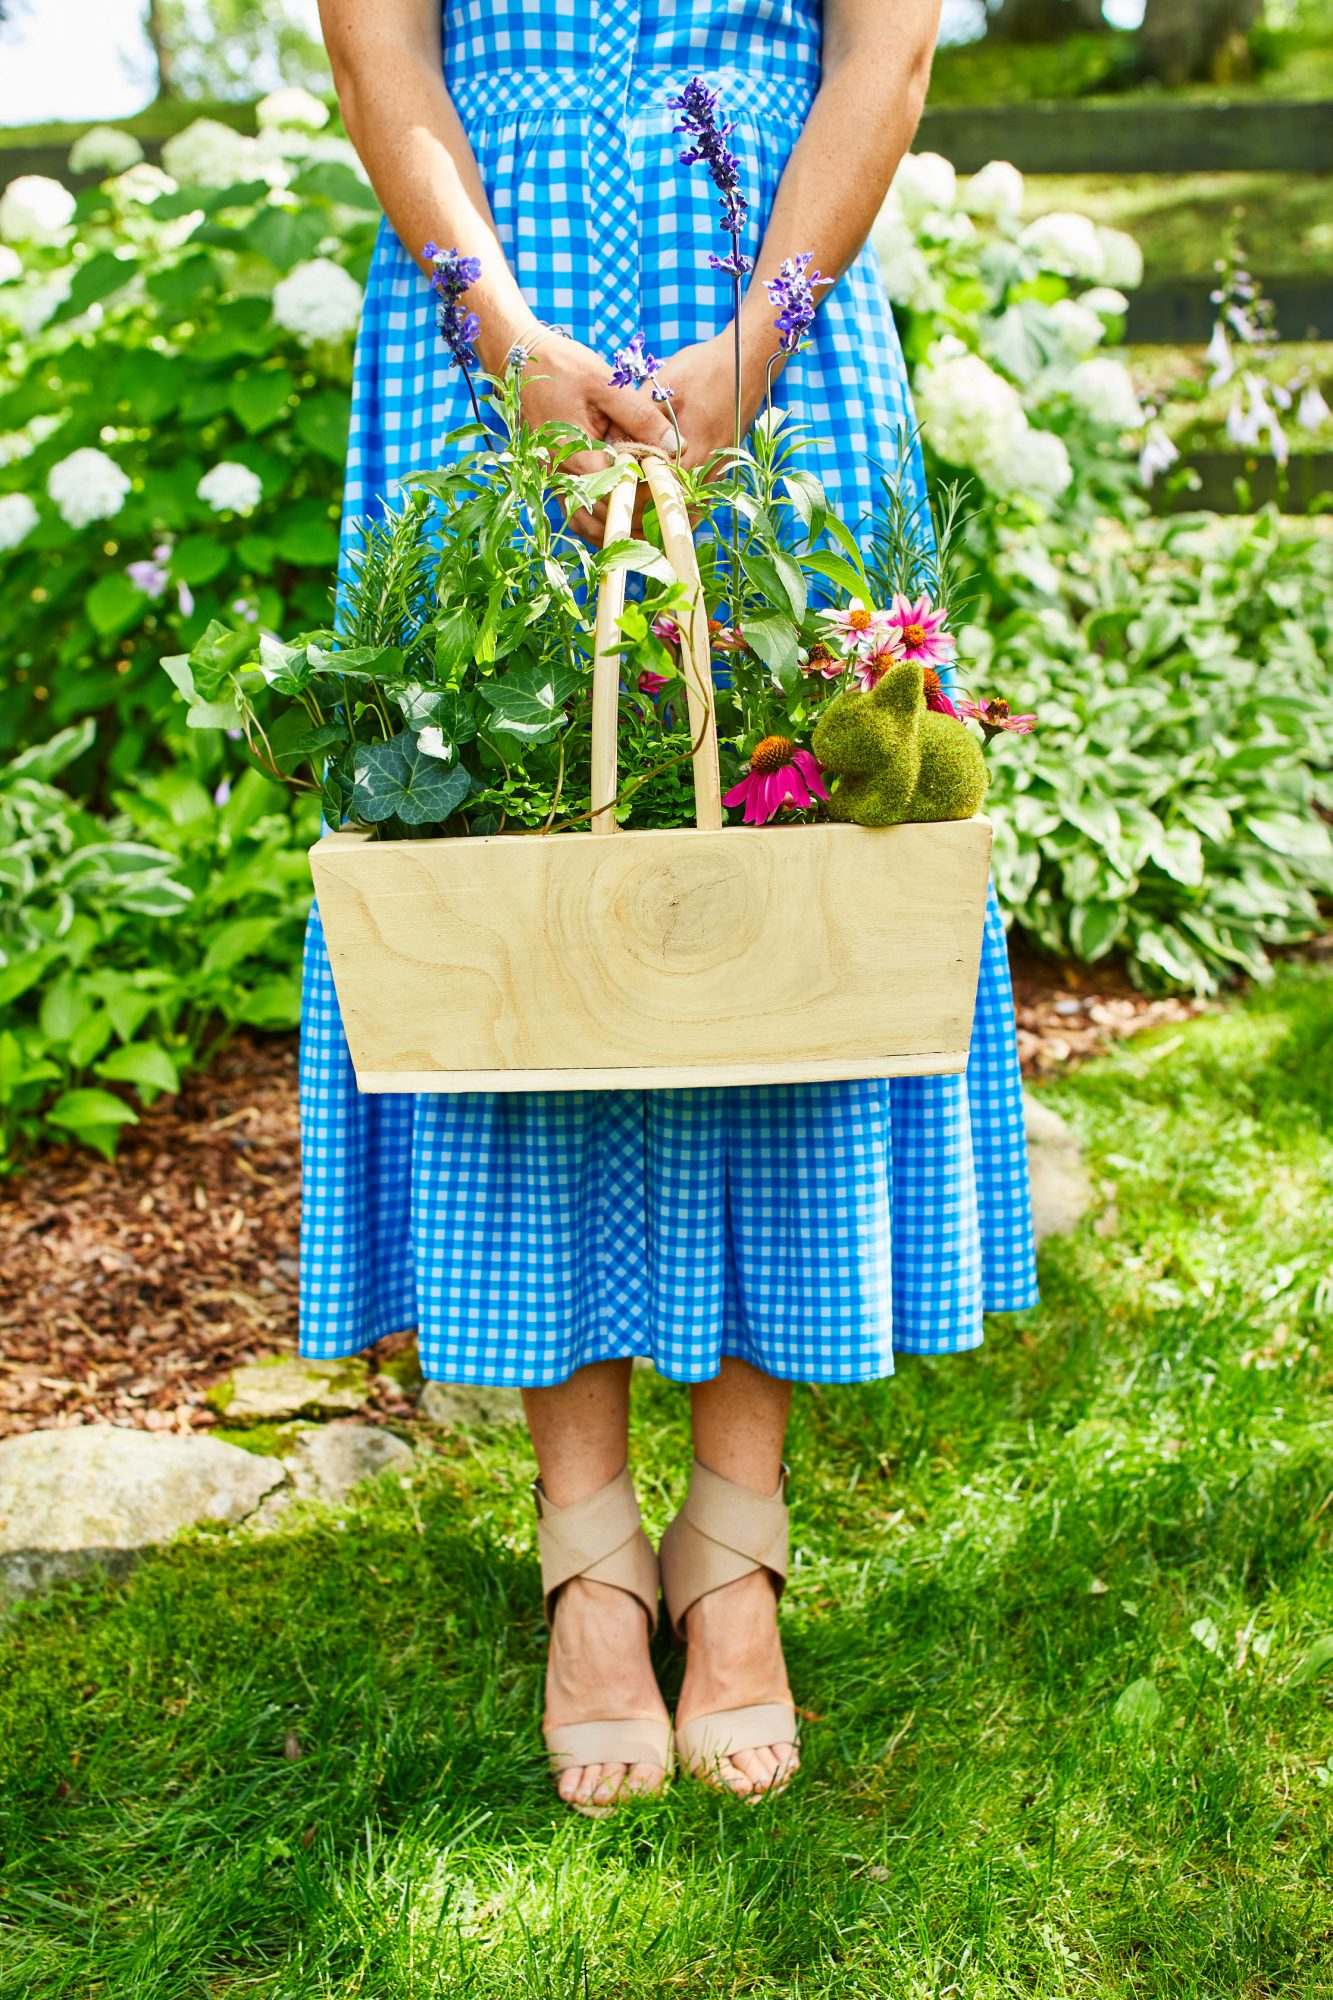 Katie Jacobs holding basket with flowers